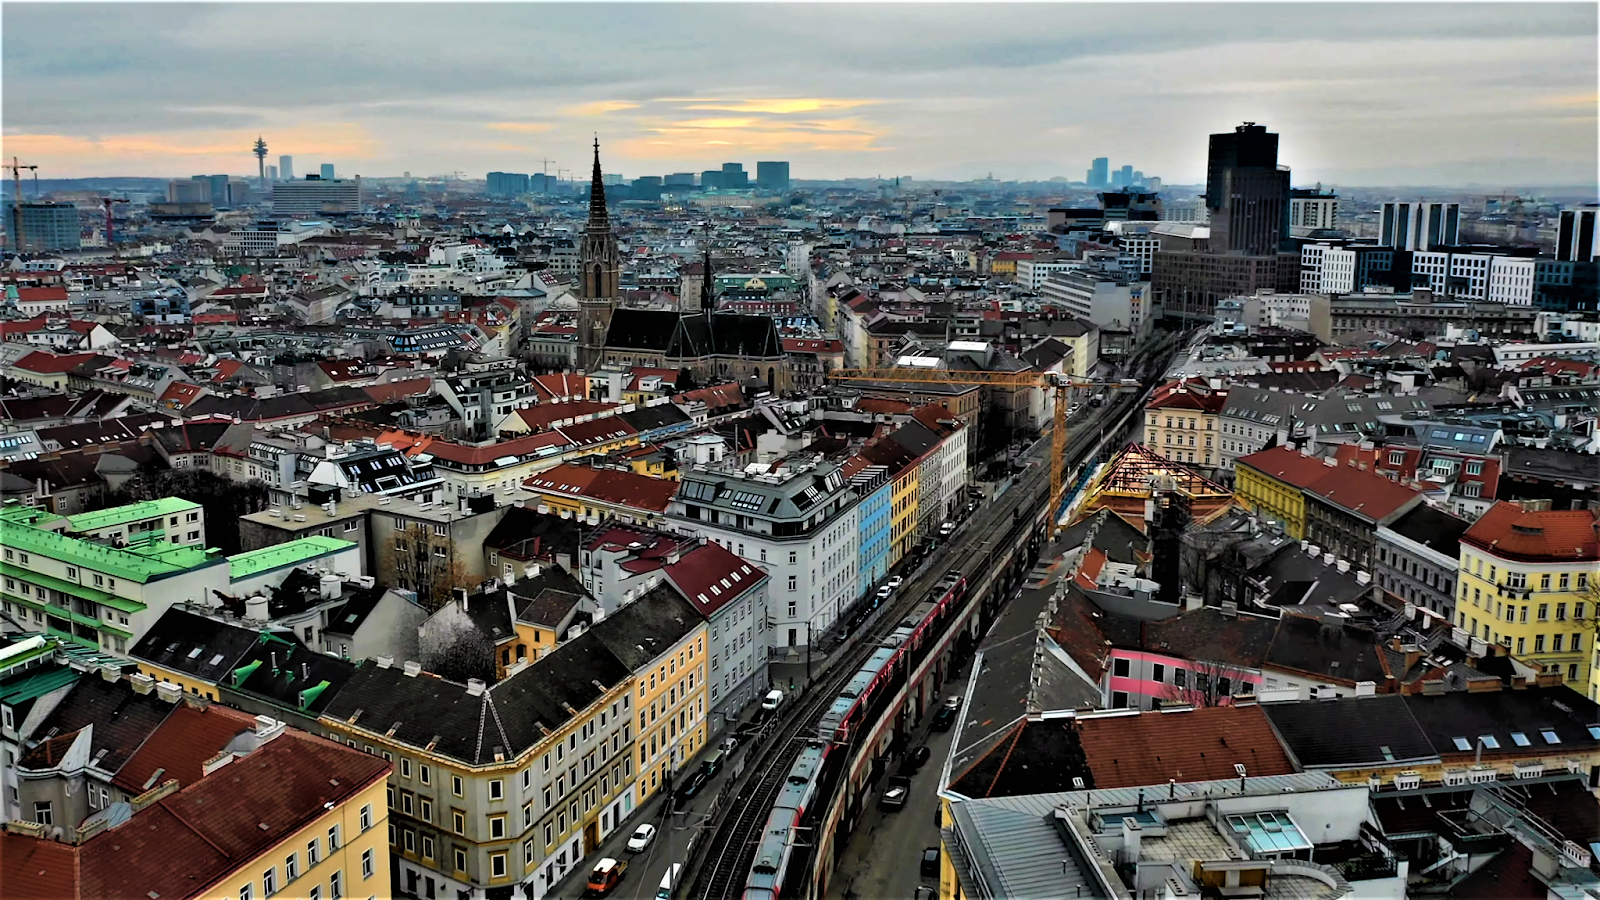 Vienna, 5th most sustainable city 2018